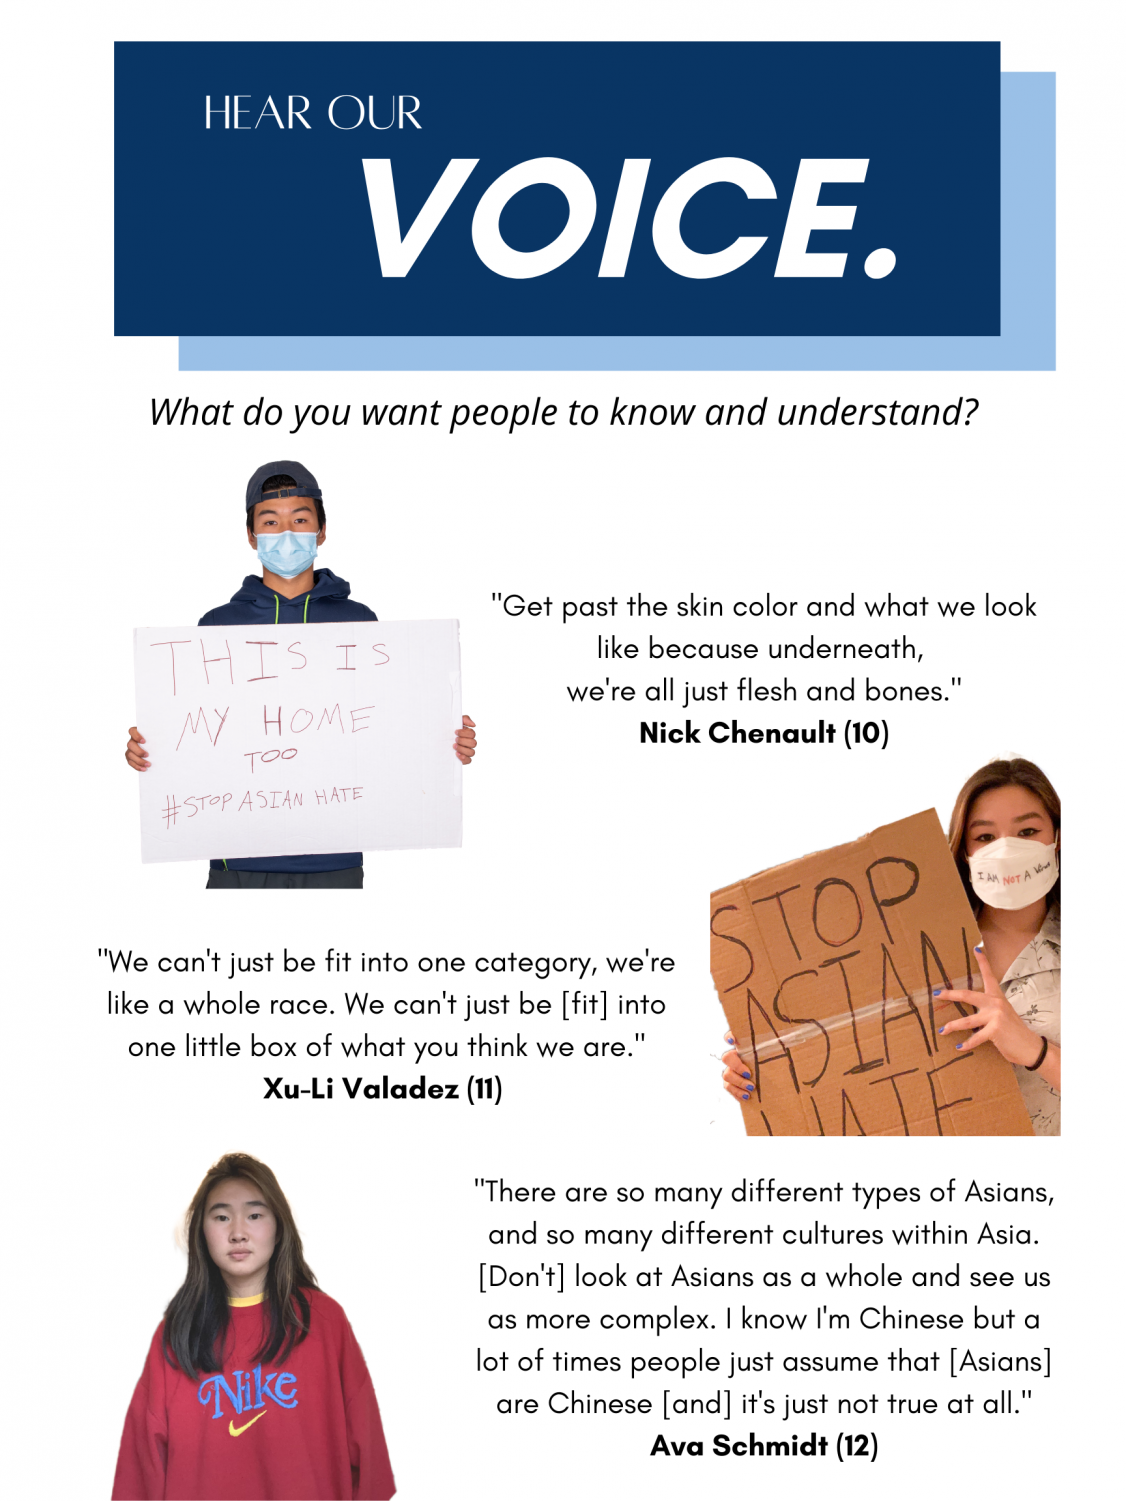 """An infographic titled """"Hear Our Voice"""" at the top followed by a question, """"what do you want people to know and understand,"""" underneath. First row on the left, there is a portrait of Nick Chenault holding a sign which says, """"This is my home too #StopAsianHate."""" On the left, a quote by him is displayed which says: """"get past the skin color and what we look like because underneath, we're all just flesh and bones."""" Second row on the right, there is a portrait of Xu-Li Valadez holding a sign which says, """"Stop Asian Hate"""" On the left, a quote by her is displayed which says: """"We can't just be fit into one category, we're like a whole race. We can't just be [fit] into one little box of what you think we are."""" Third row on the left, there is a portrait of Ava Scmidt. On the right, a quote by her is displayed which says: """"There are so many different types of Asians, and so many different cultures within Asia. [Don't] look at Asians as a whole and see us as more complex. I know I'm Chinese but a lot of times people just assume that [Asians] are Chinese [and] it's just not true at all."""""""